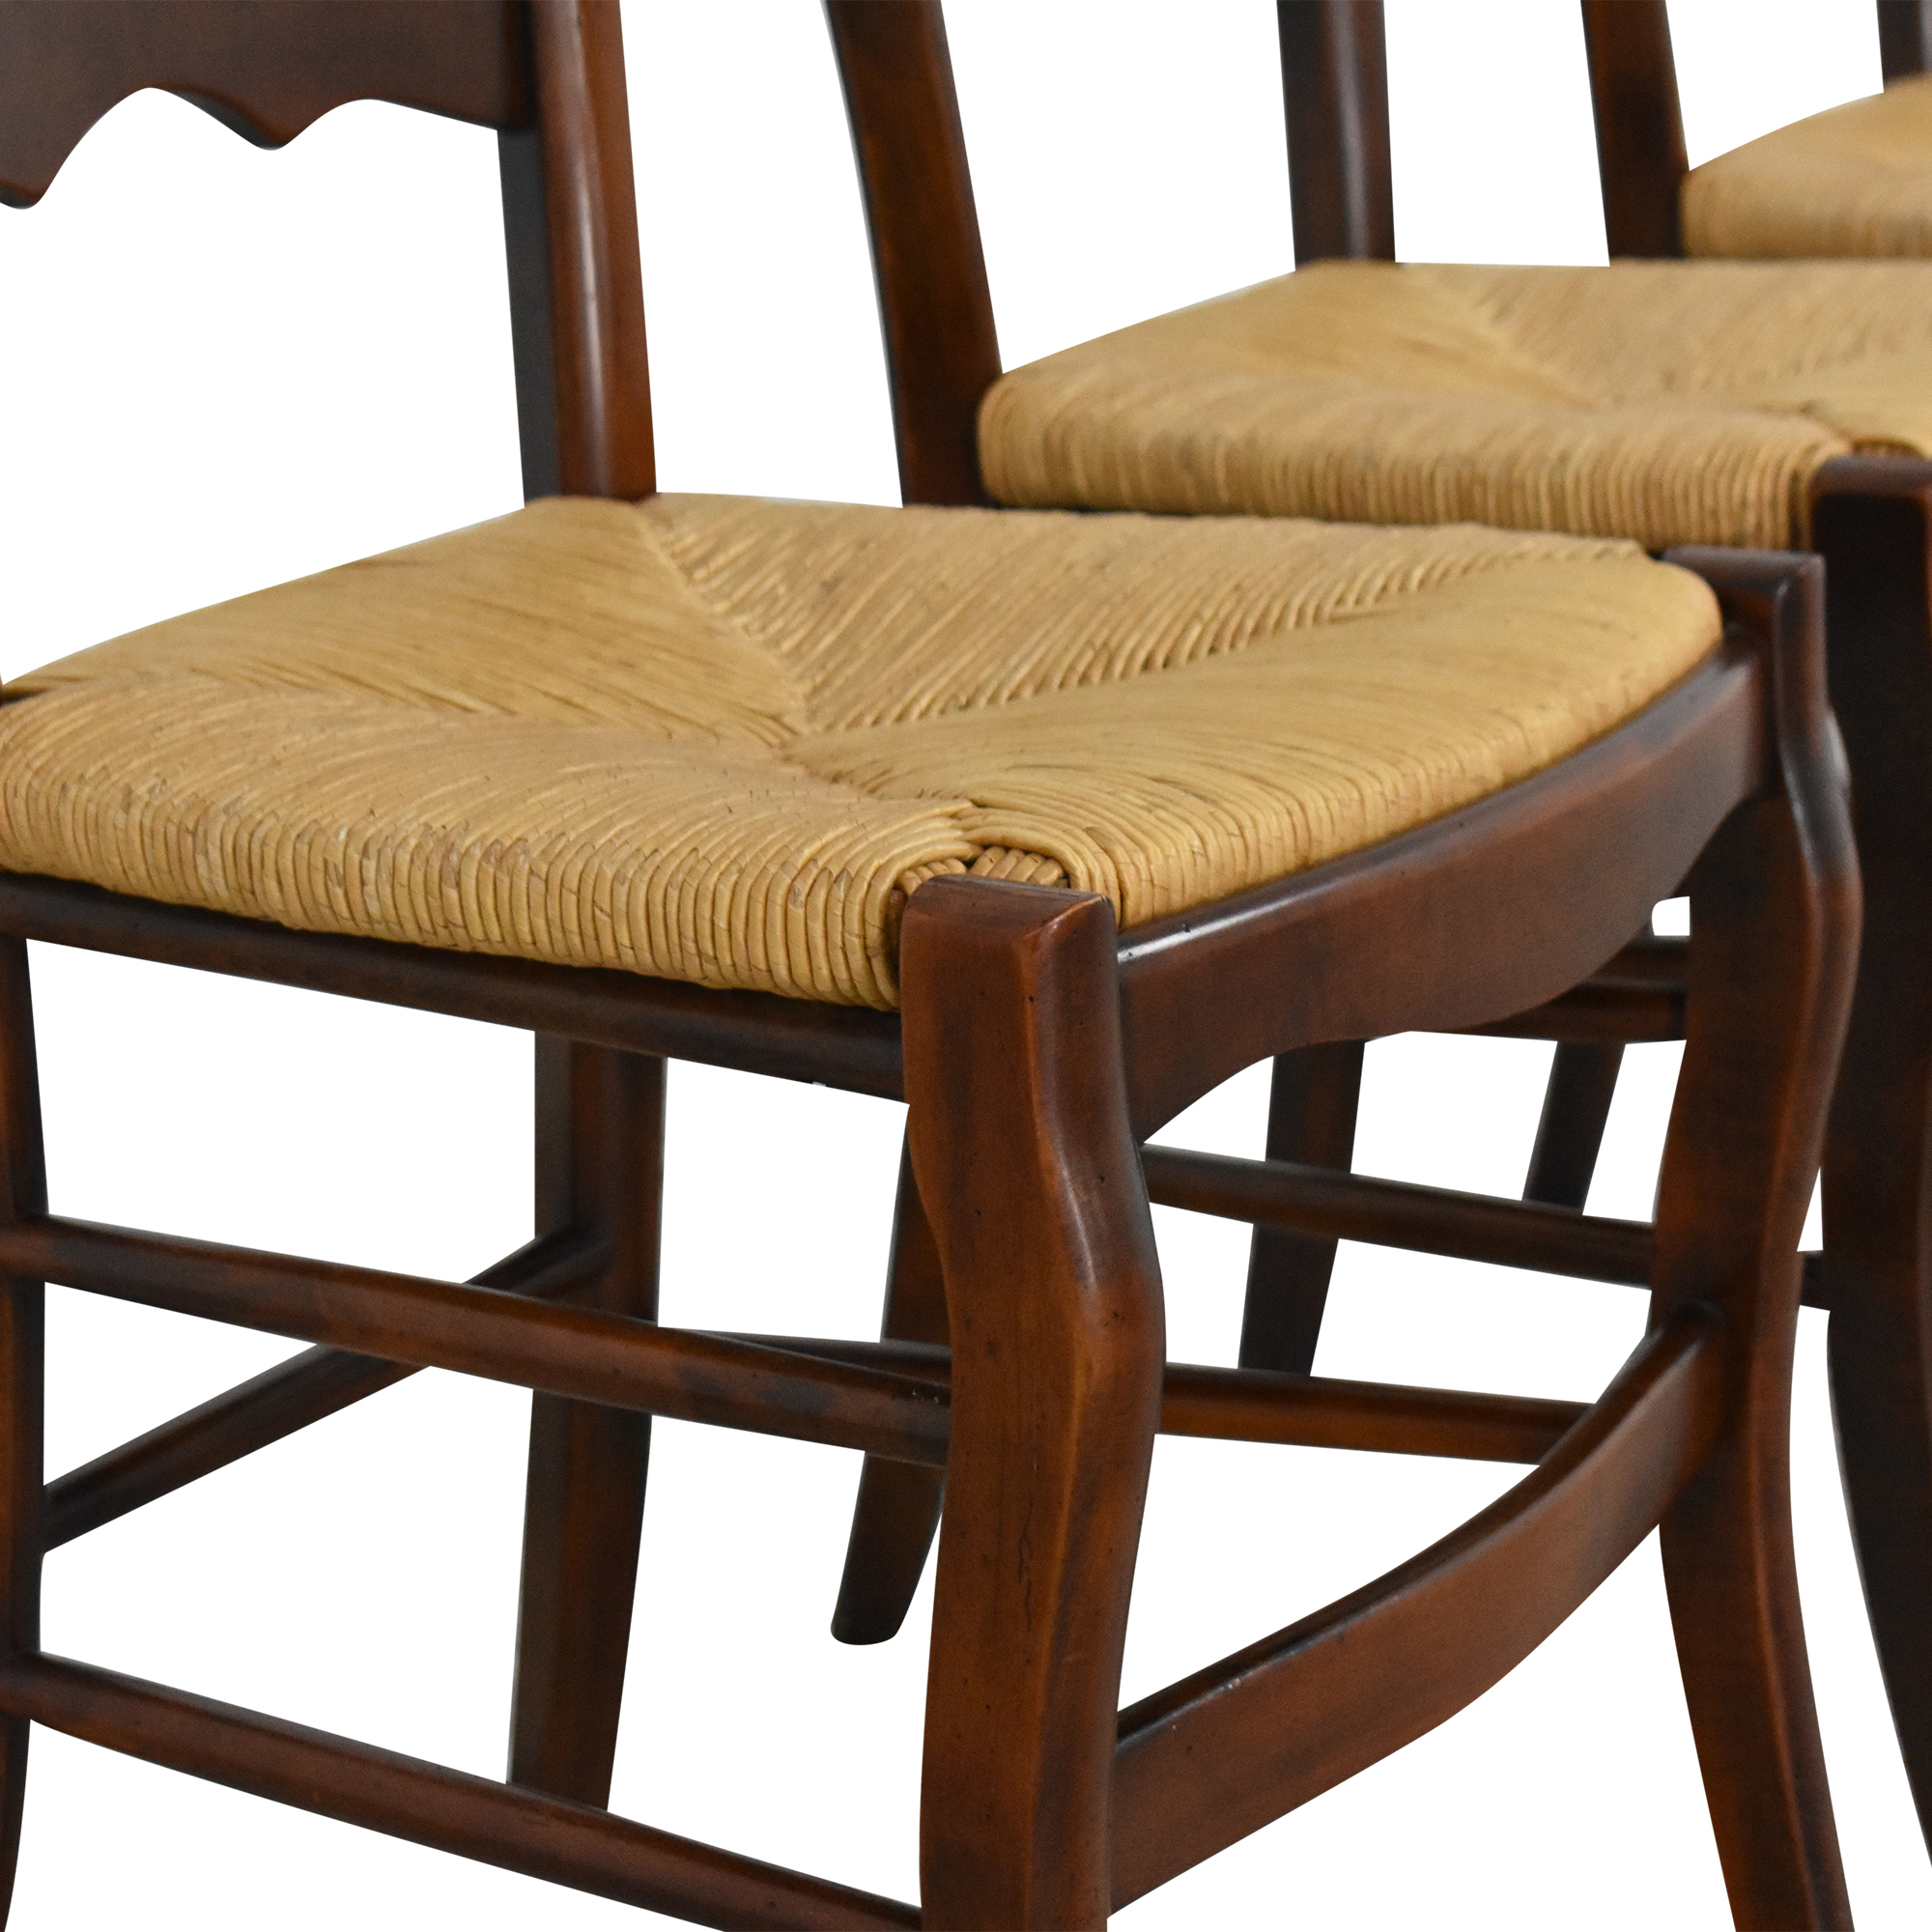 Hickory Chair Hickory Chair Ladder Back Dining Chairs dimensions